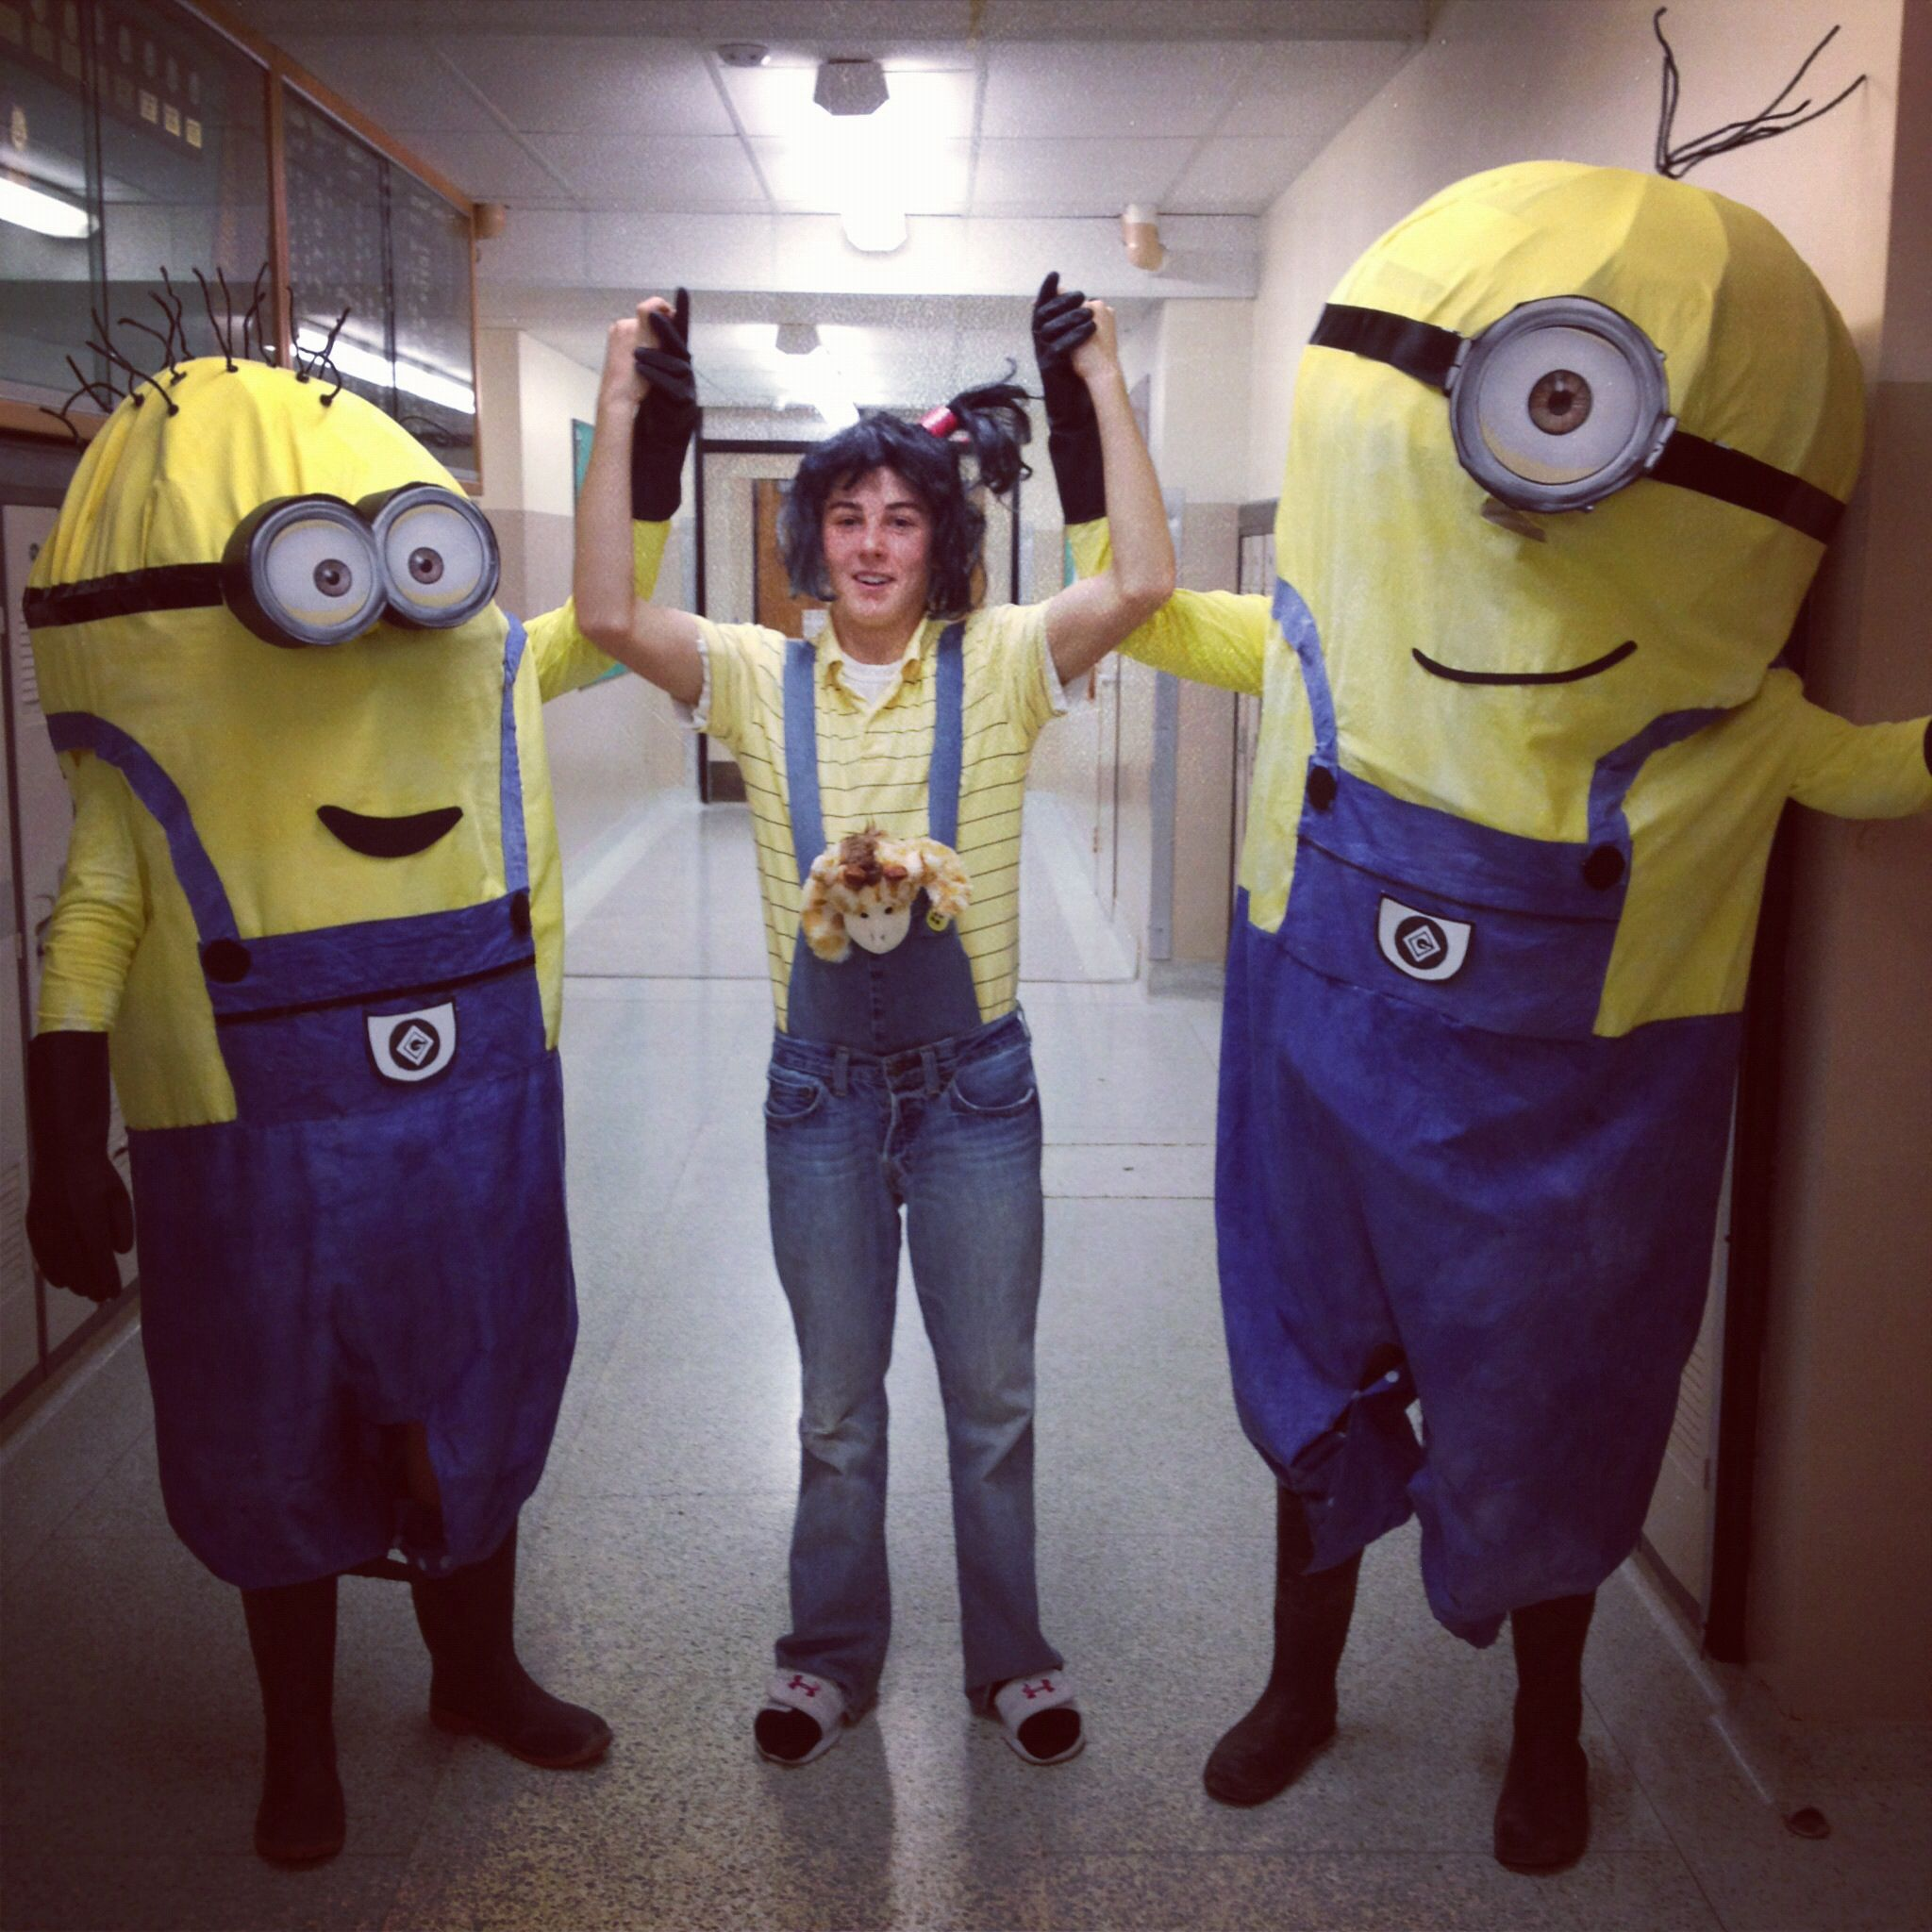 My cousins home made DIY despicable me Halloween costumes!  sc 1 st  Pinterest & My cousins home made DIY despicable me Halloween costumes ...